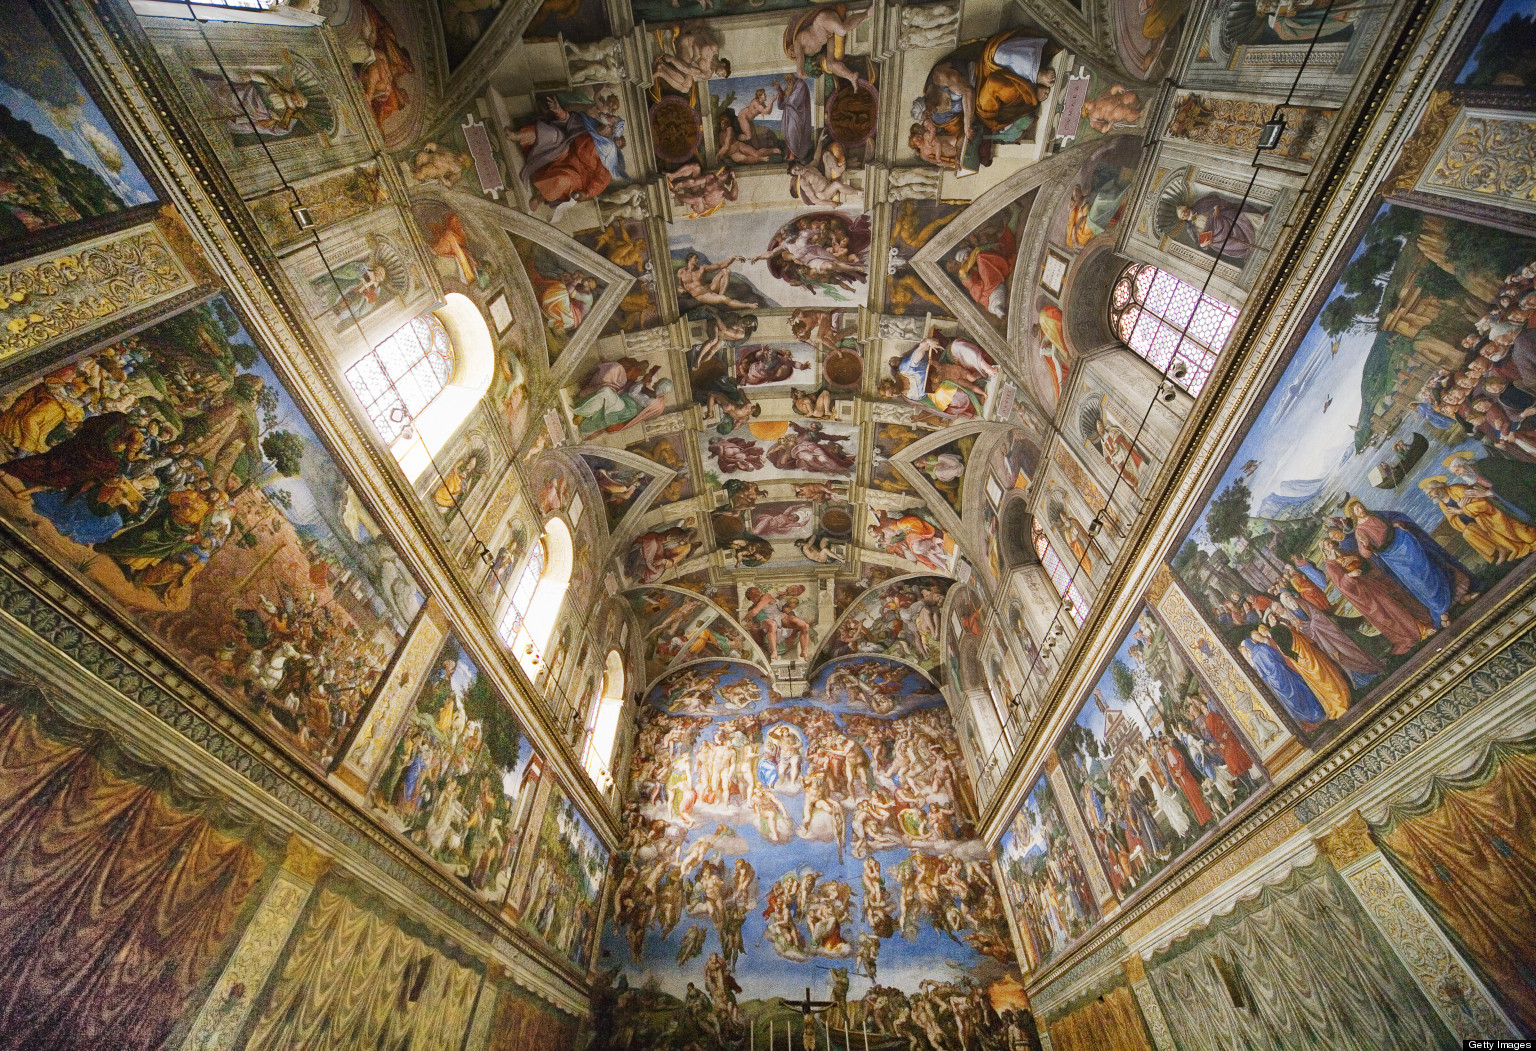 This makes the Vatican 80 million euros a year, so money well invested way back when, I suppose.